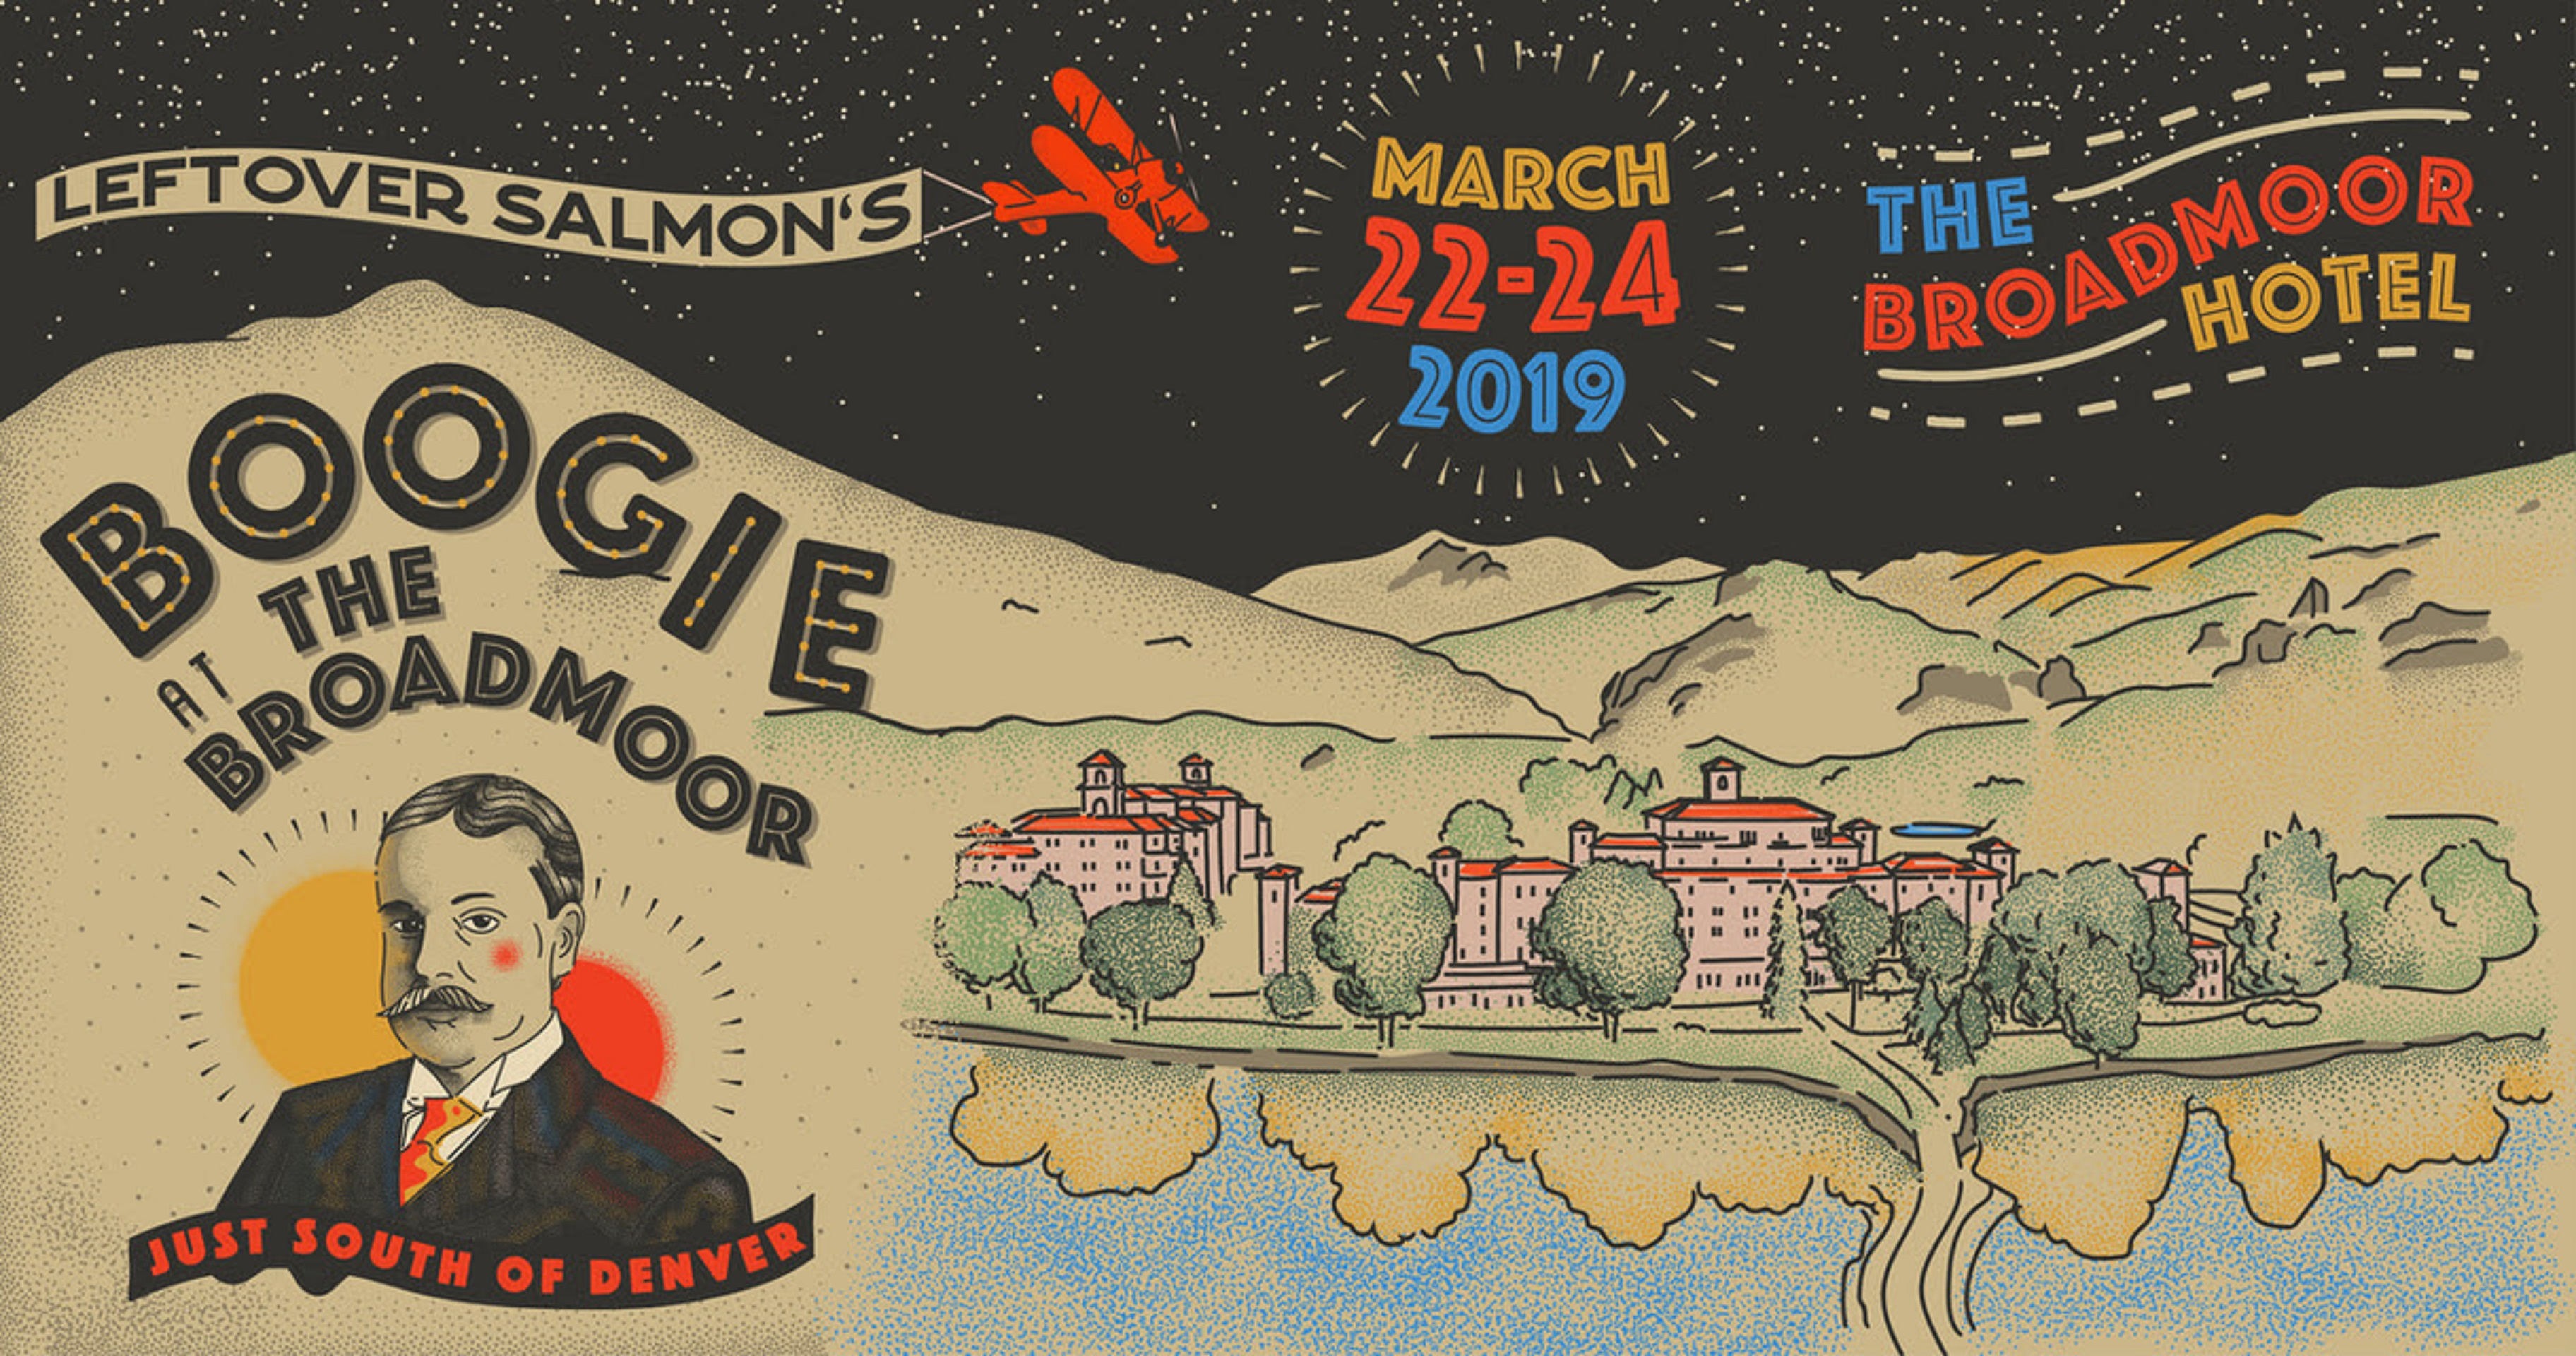 Announcing Leftover Salmon's Boogie At The Broadmoor